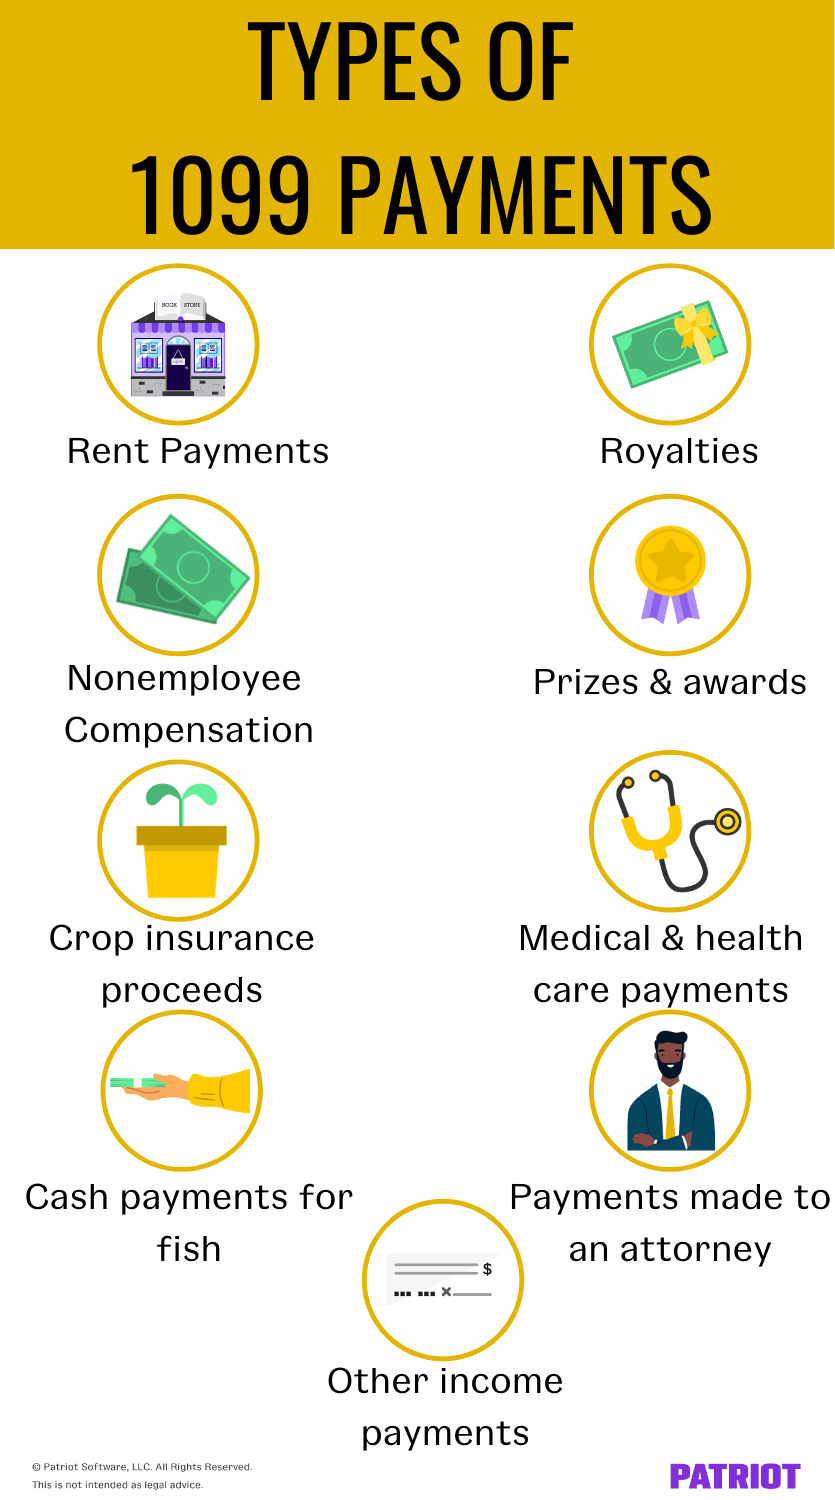 types of 1099 payments